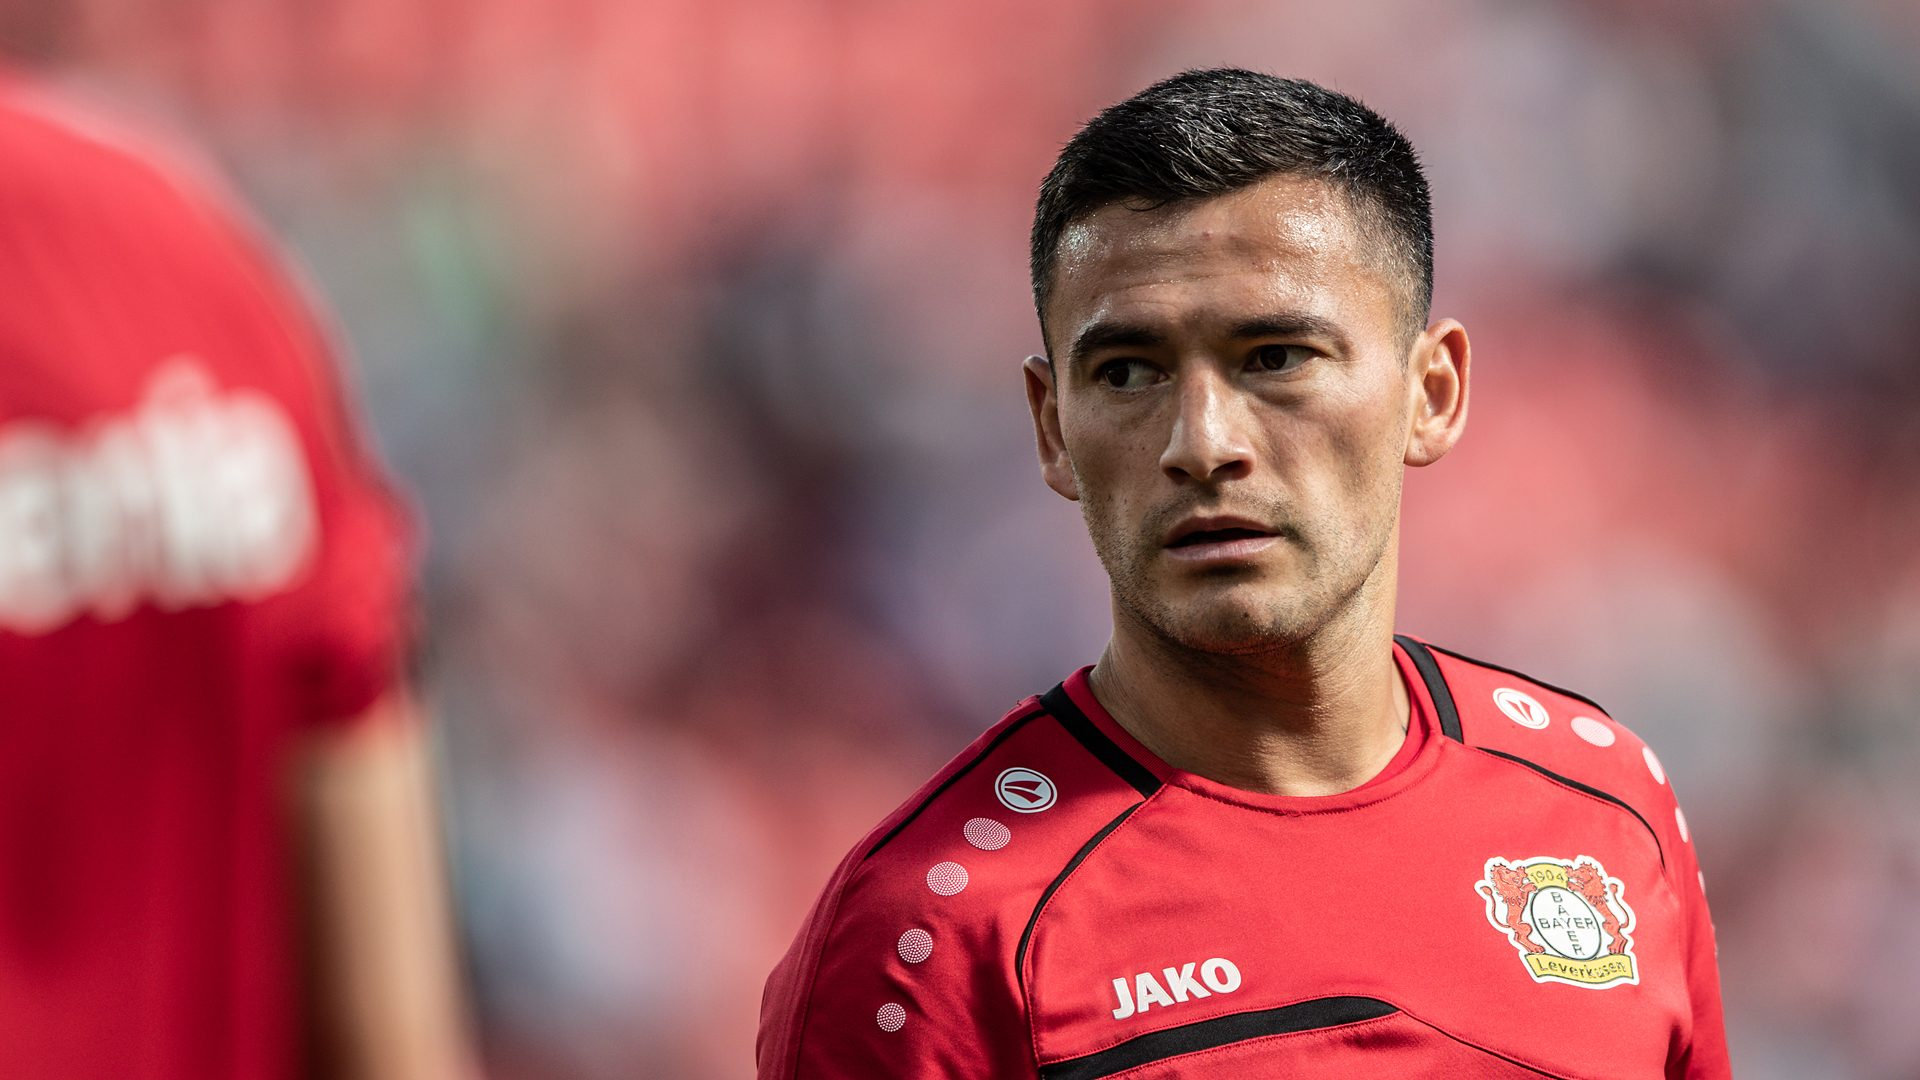 Bundesliga Charles Aranguiz 5 Things On The Bayer Leverkusen And Chile Midfielder